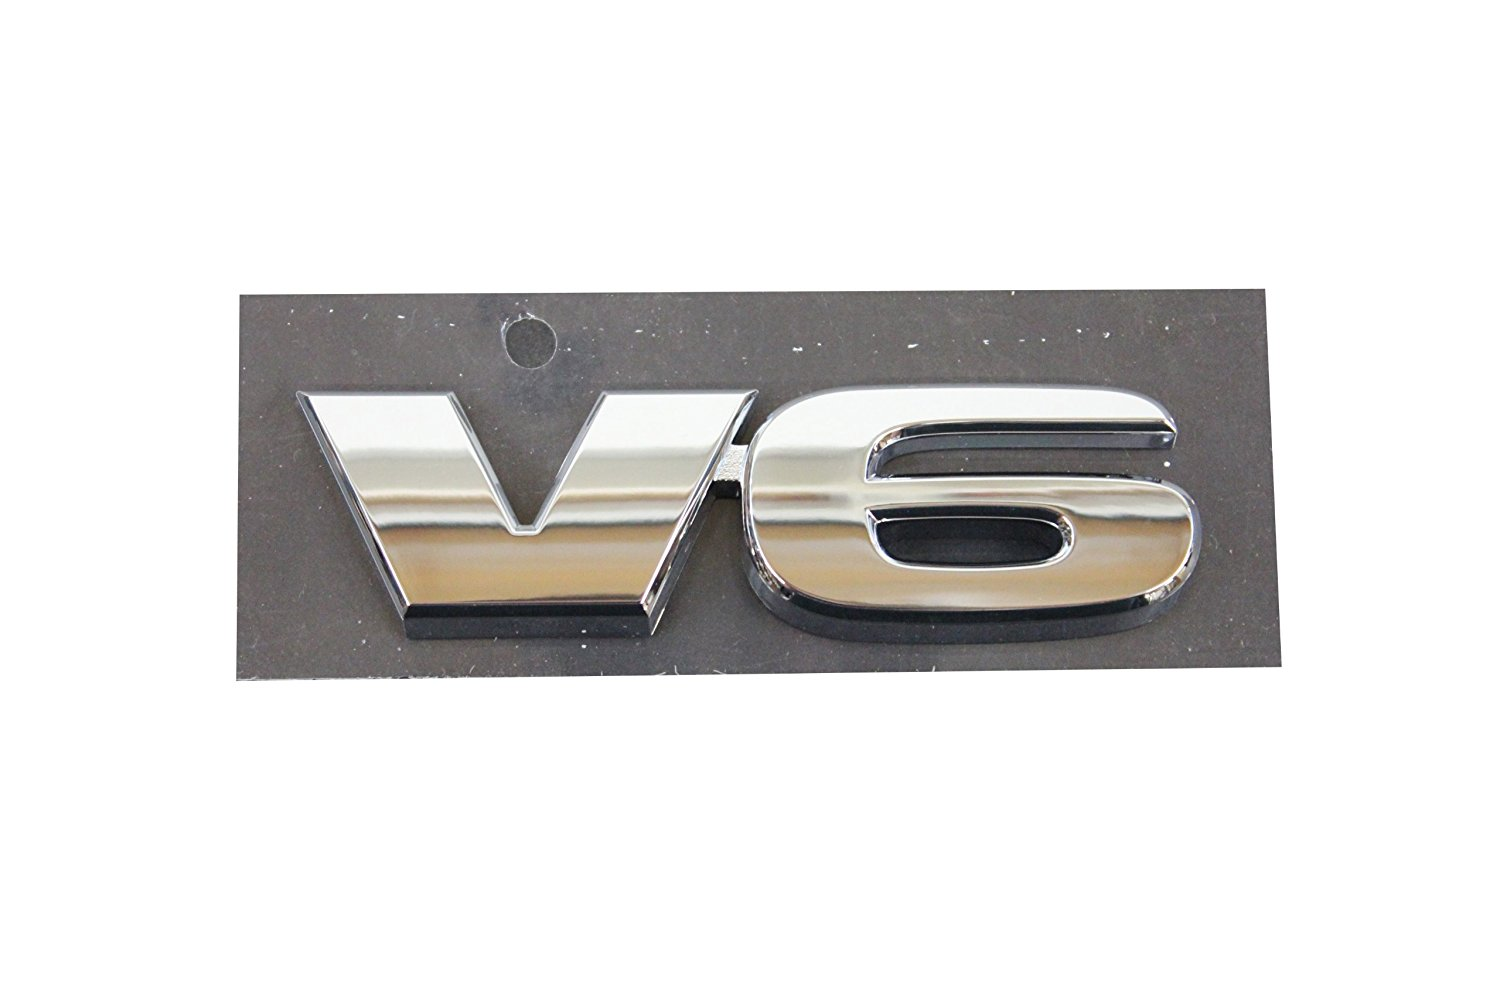 Toyota V6 Emblem as seen on Off-Road Tacomas